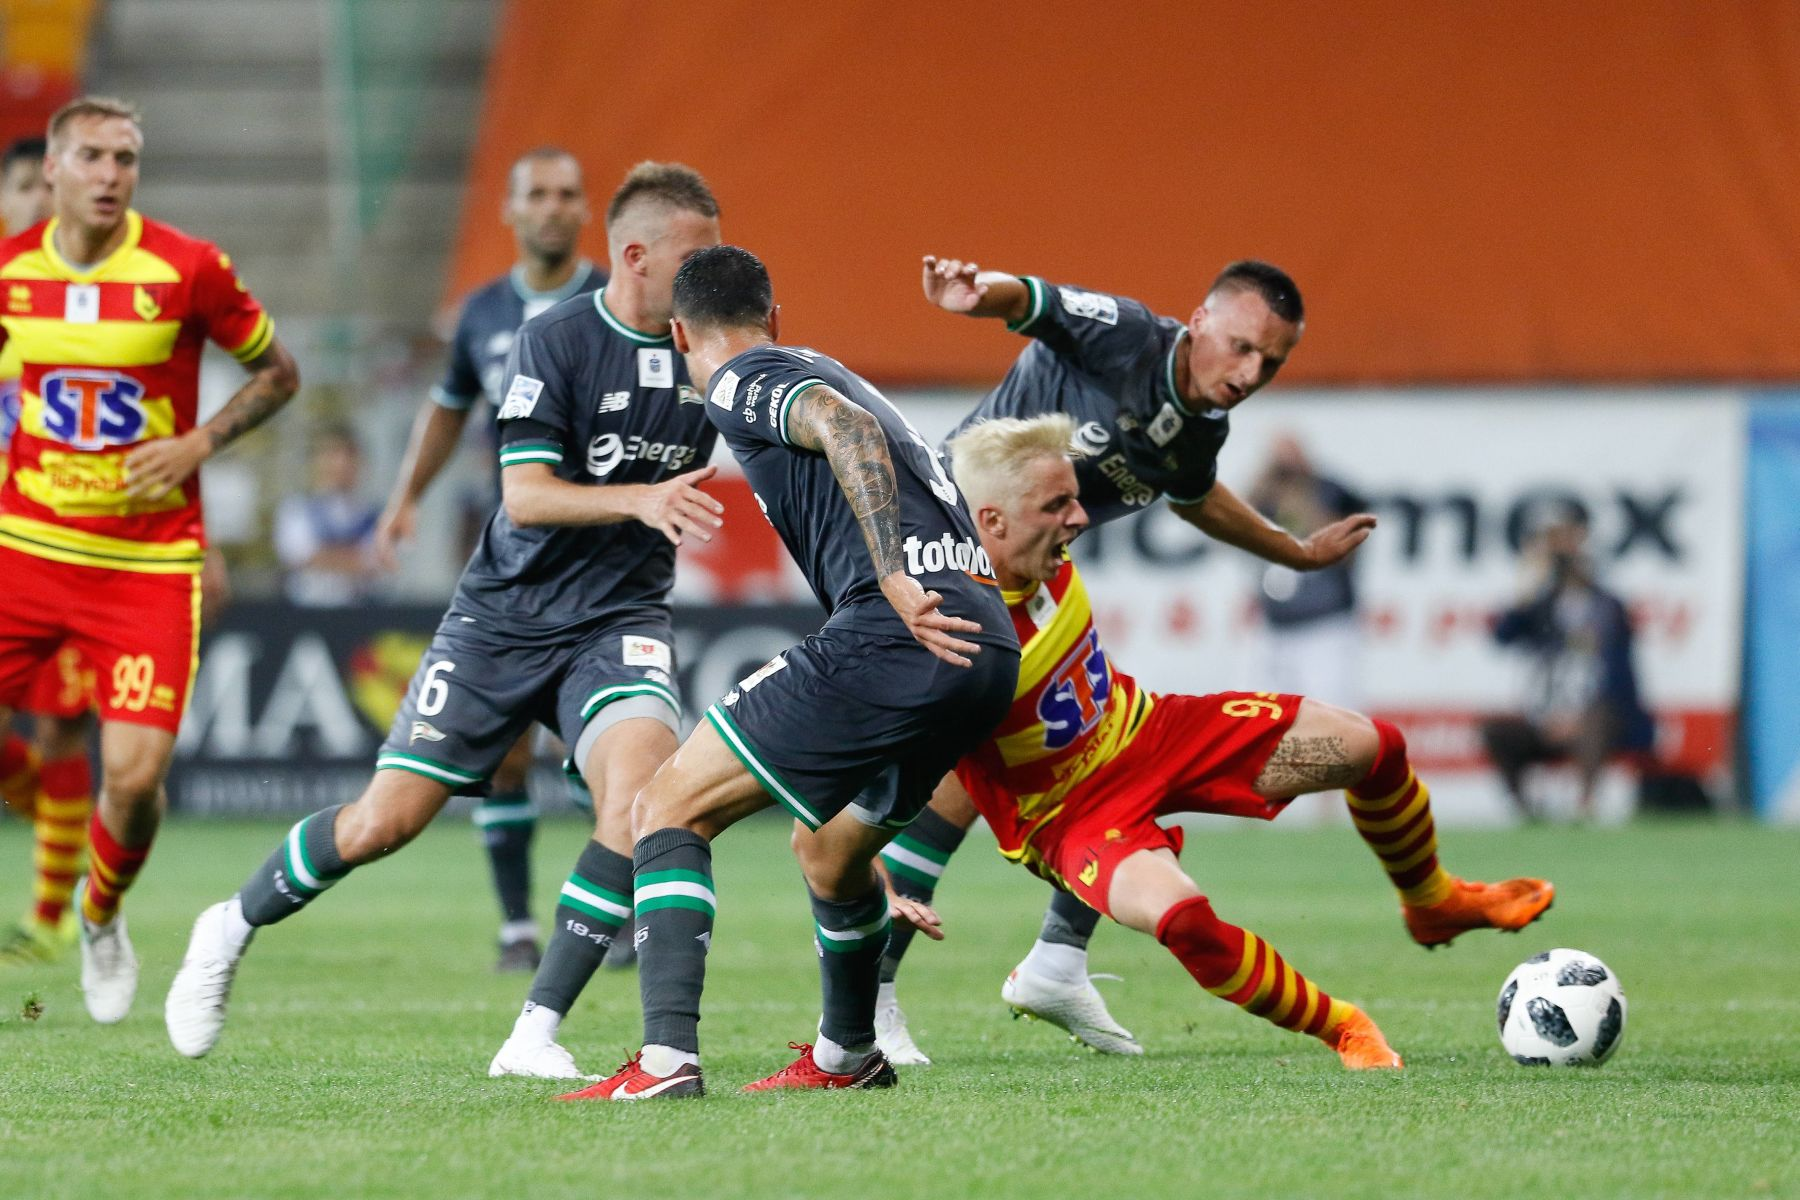 20.07.2018 Bialystok Pilka nozna Lotto Ekstraklasa 2018/2019 Jagiellonia Bialystok - Lechia Gdansk N/z Arvydas Novikovas, Slawomir Peszko, faul Foto Adam Starszynski / PressFocus 20.07.2018 Bialystok Football Lotto Ekstraklasa 2018/2019, polish top division Jagiellonia Bialystok - Lechia Gdansk Arvydas Novikovas, Slawomir Peszko, faul Credit Adam Starszynski / PressFocus / NEWSPIX.PL --- Newspix.pl *** Local Caption *** www.newspix.pl mail us: info@newspix.pl call us: 0048 022 23 22 222 --- Polish Picture Agency by Ringier Axel Springer Poland